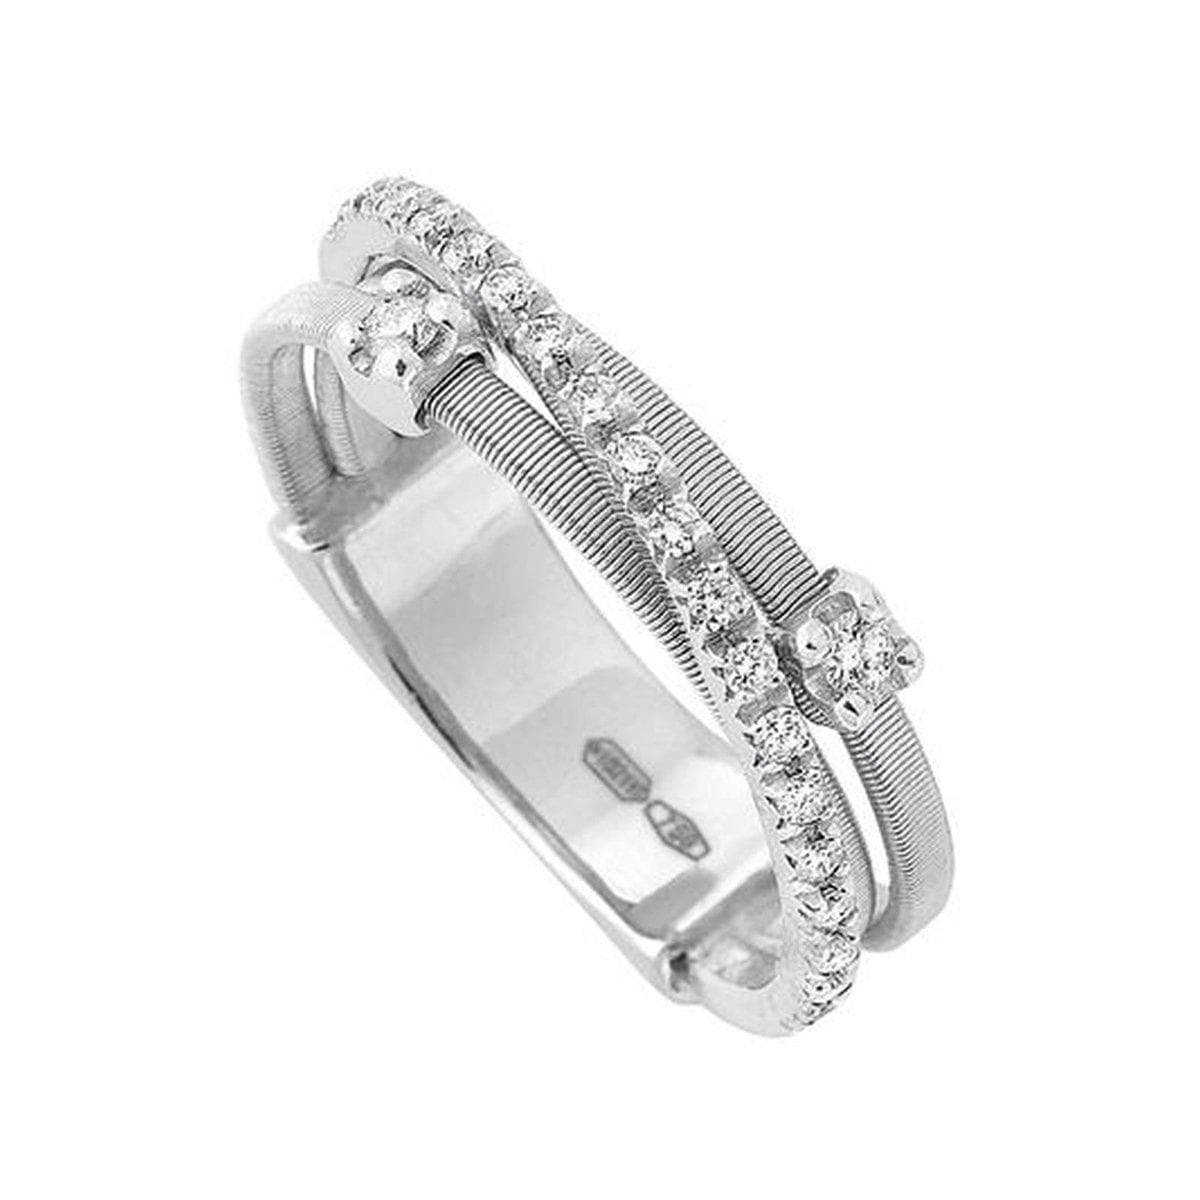 18K Goa 3 Row Diamond Ring - AG269 B2 W